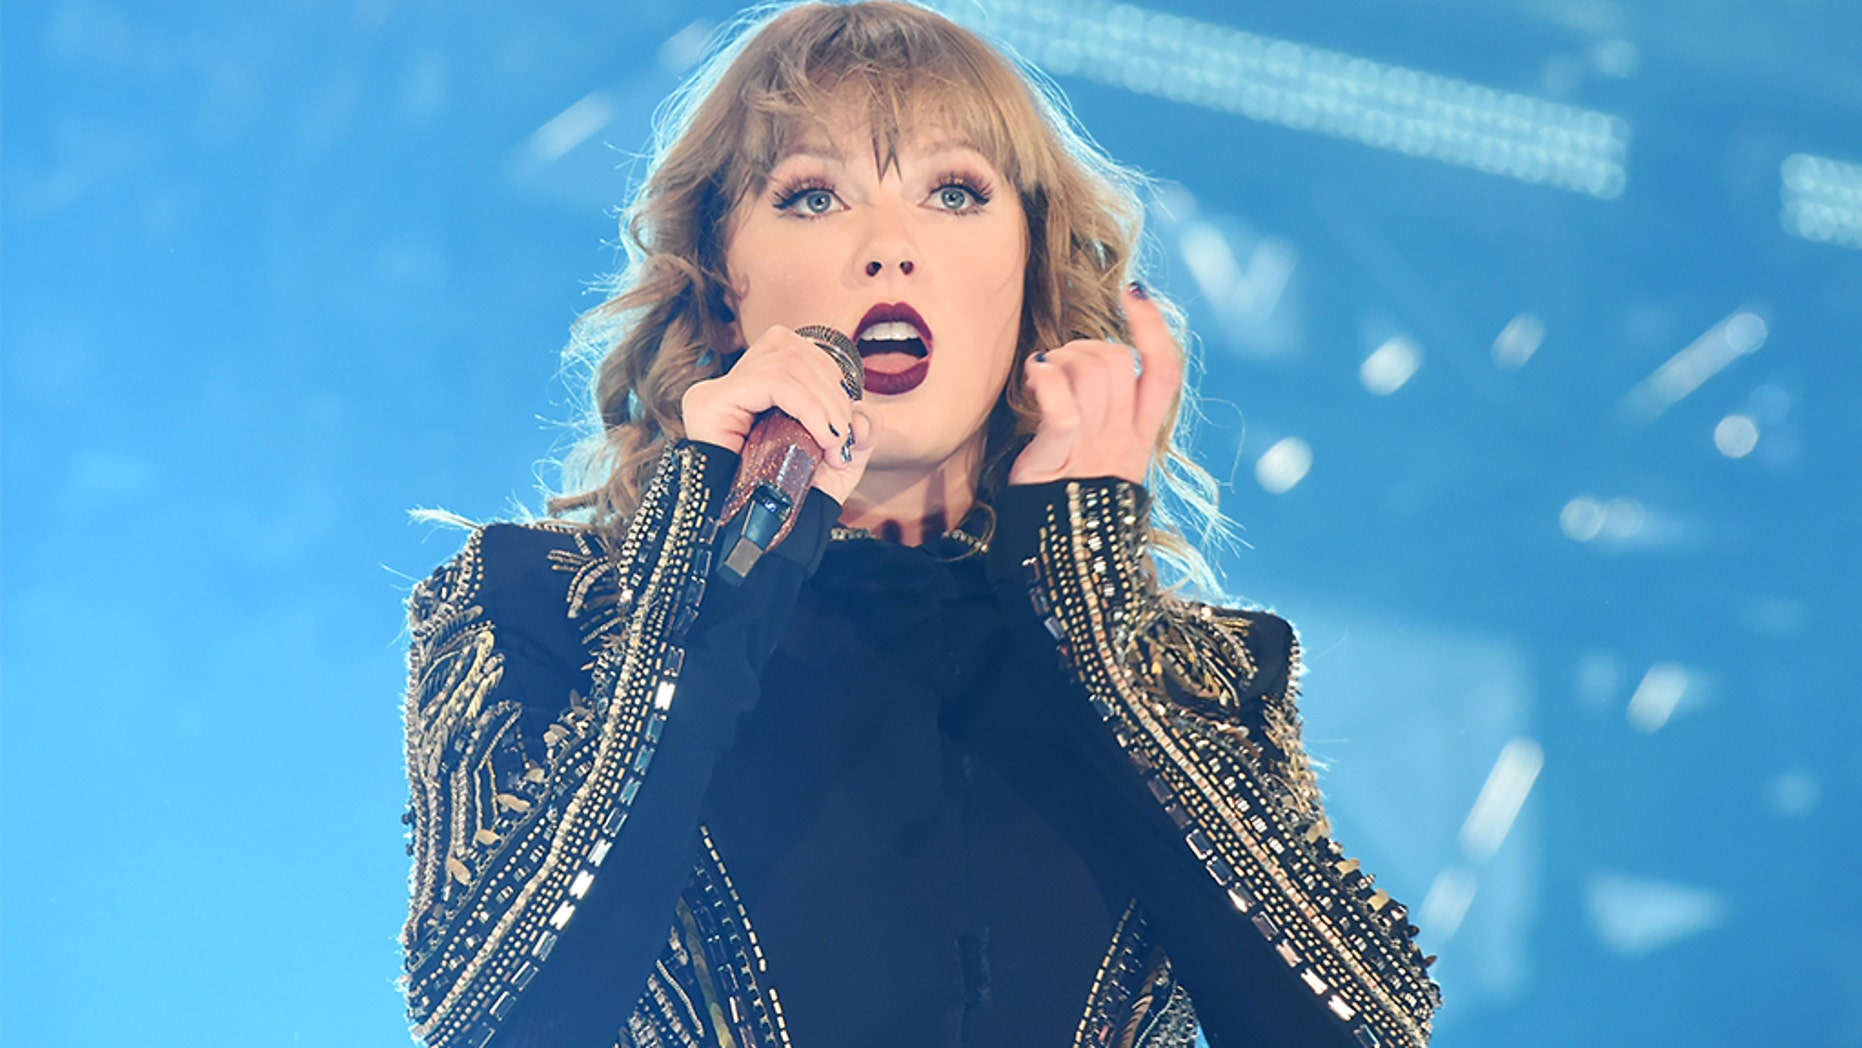 Netflix's Taylor Swift Concert Documentary Trailer: Are You Ready for It?